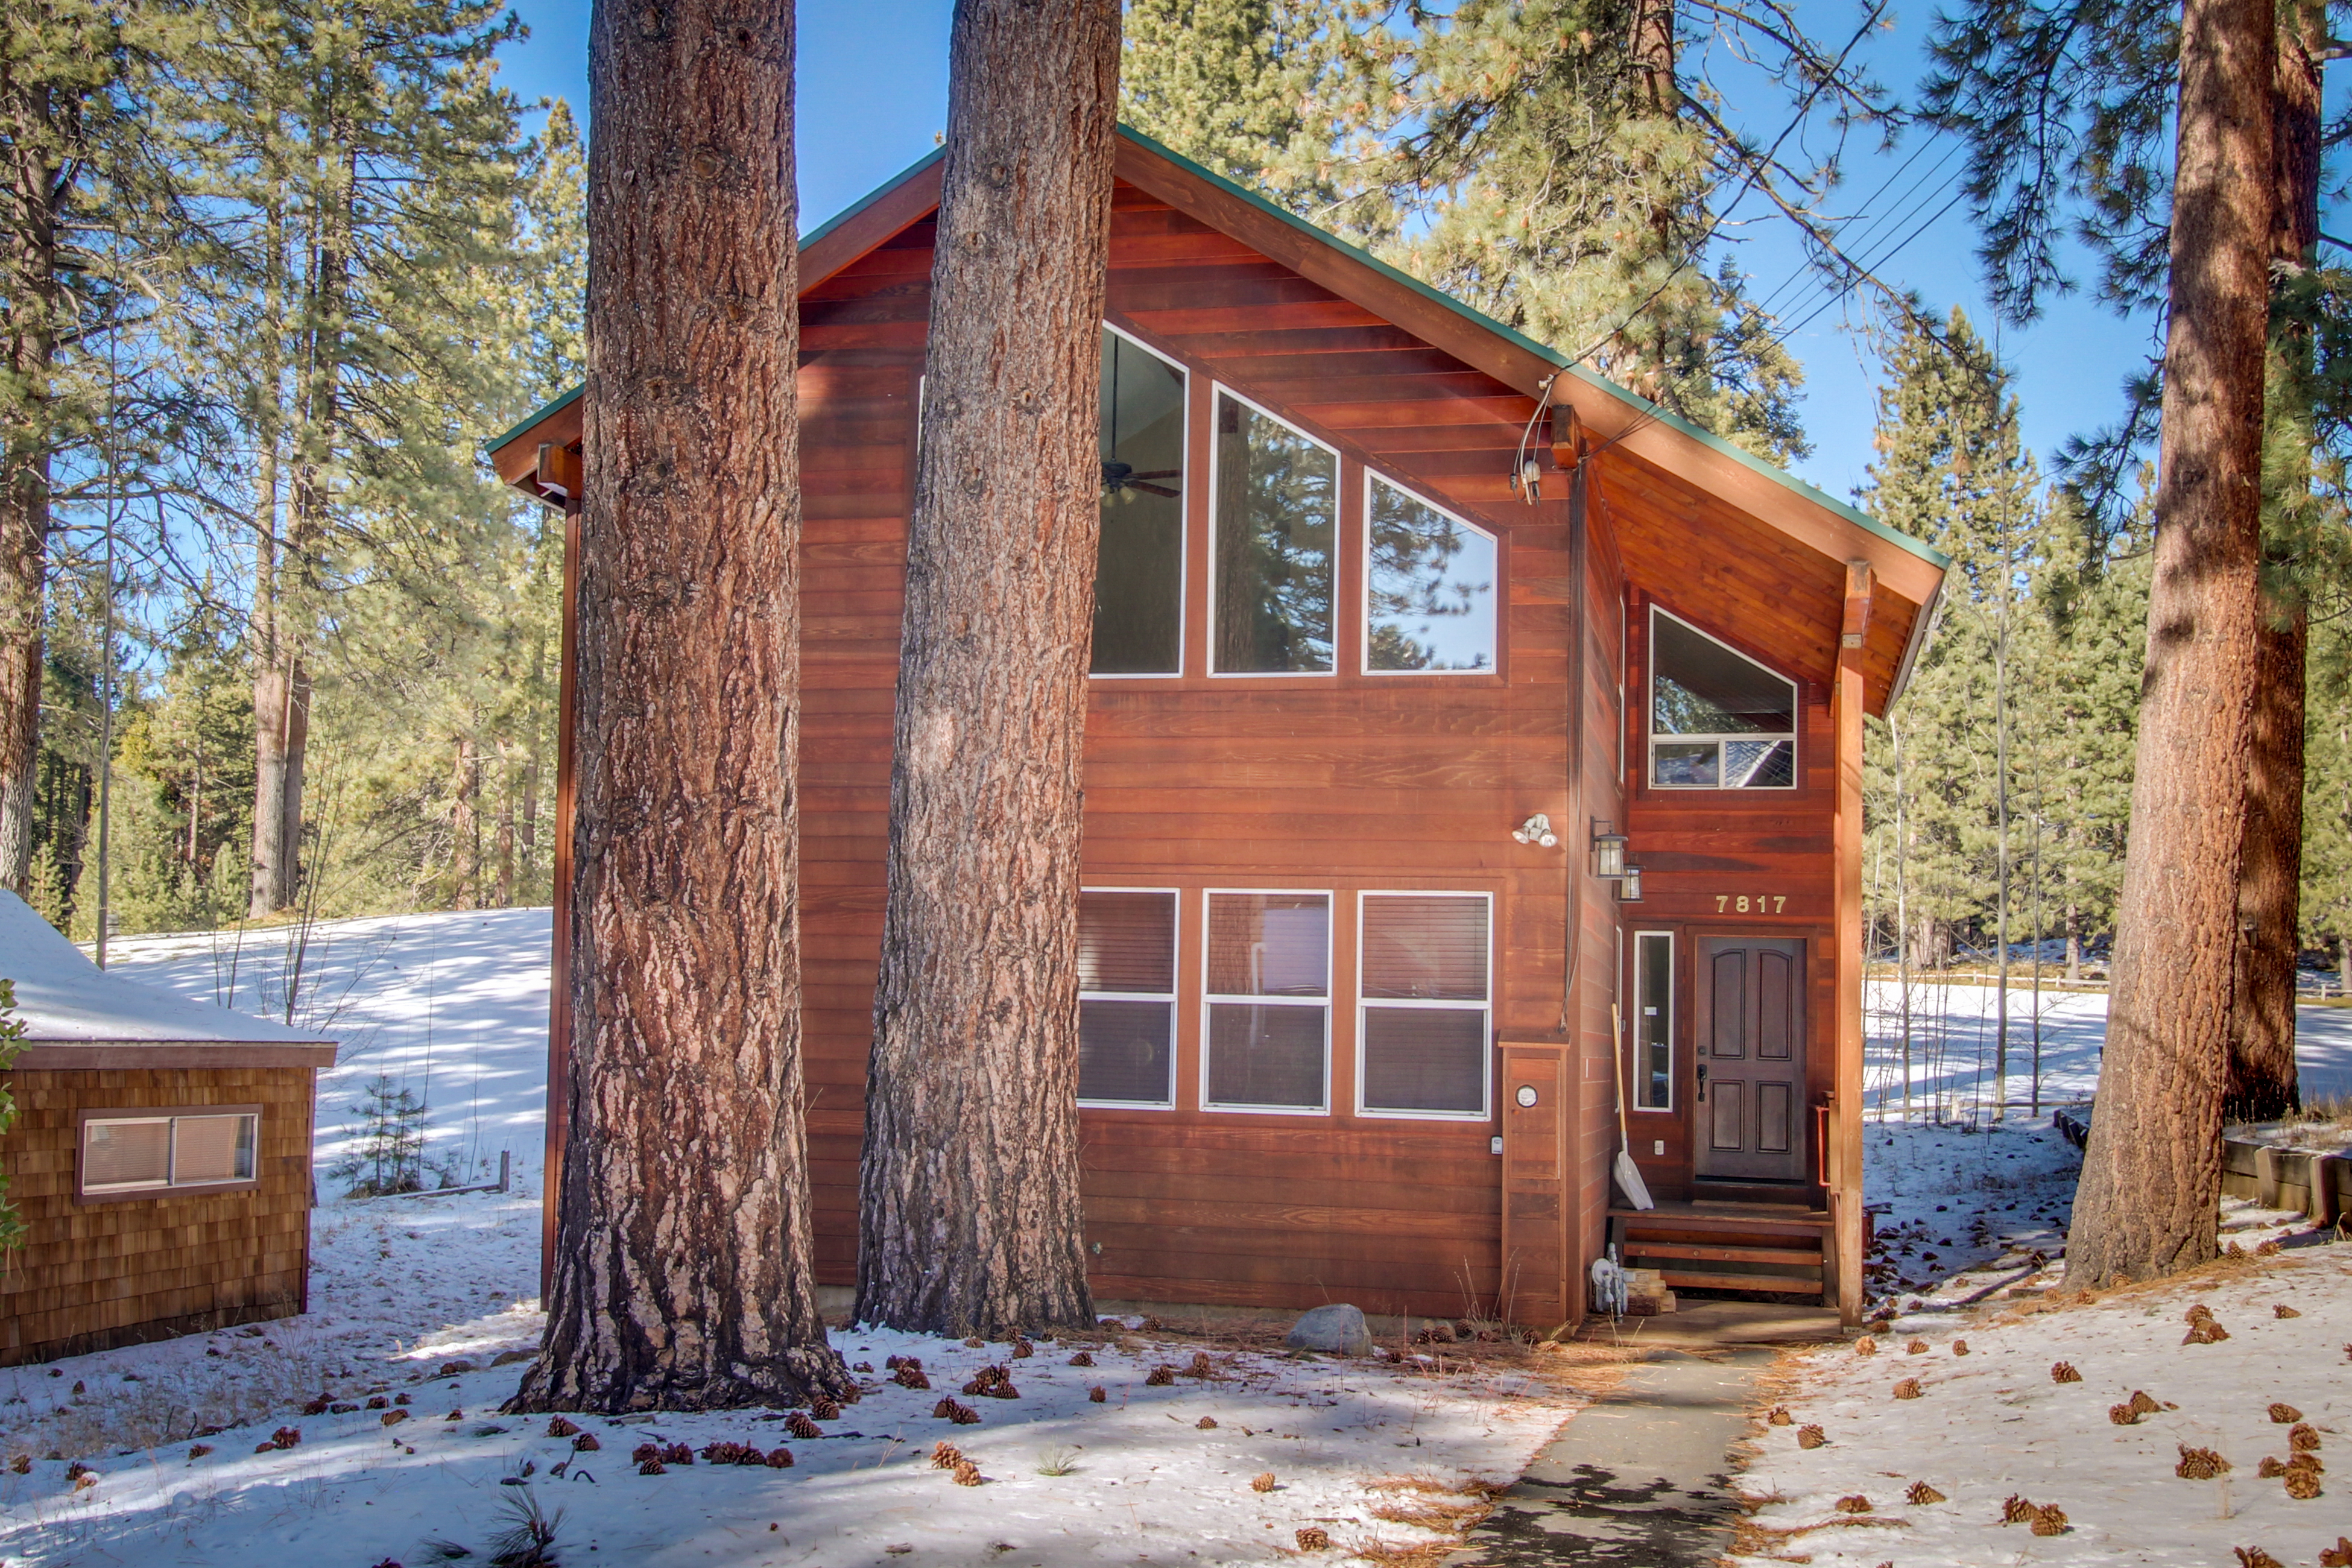 slt looking tour ave management rent ca a rental property term cabins for suite tahoe lake harrison long